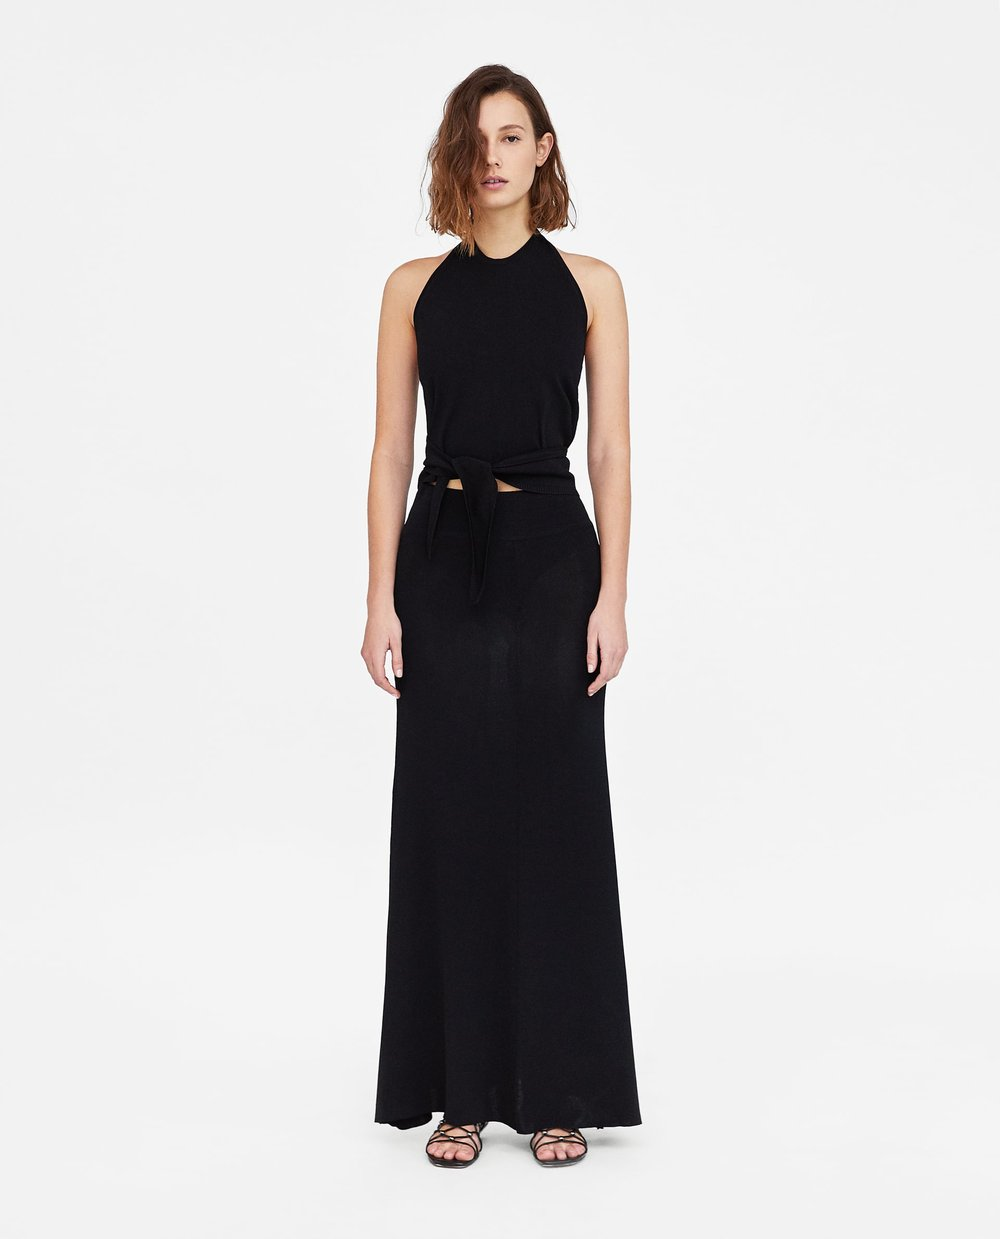 Minimal Halter Top and Skirt